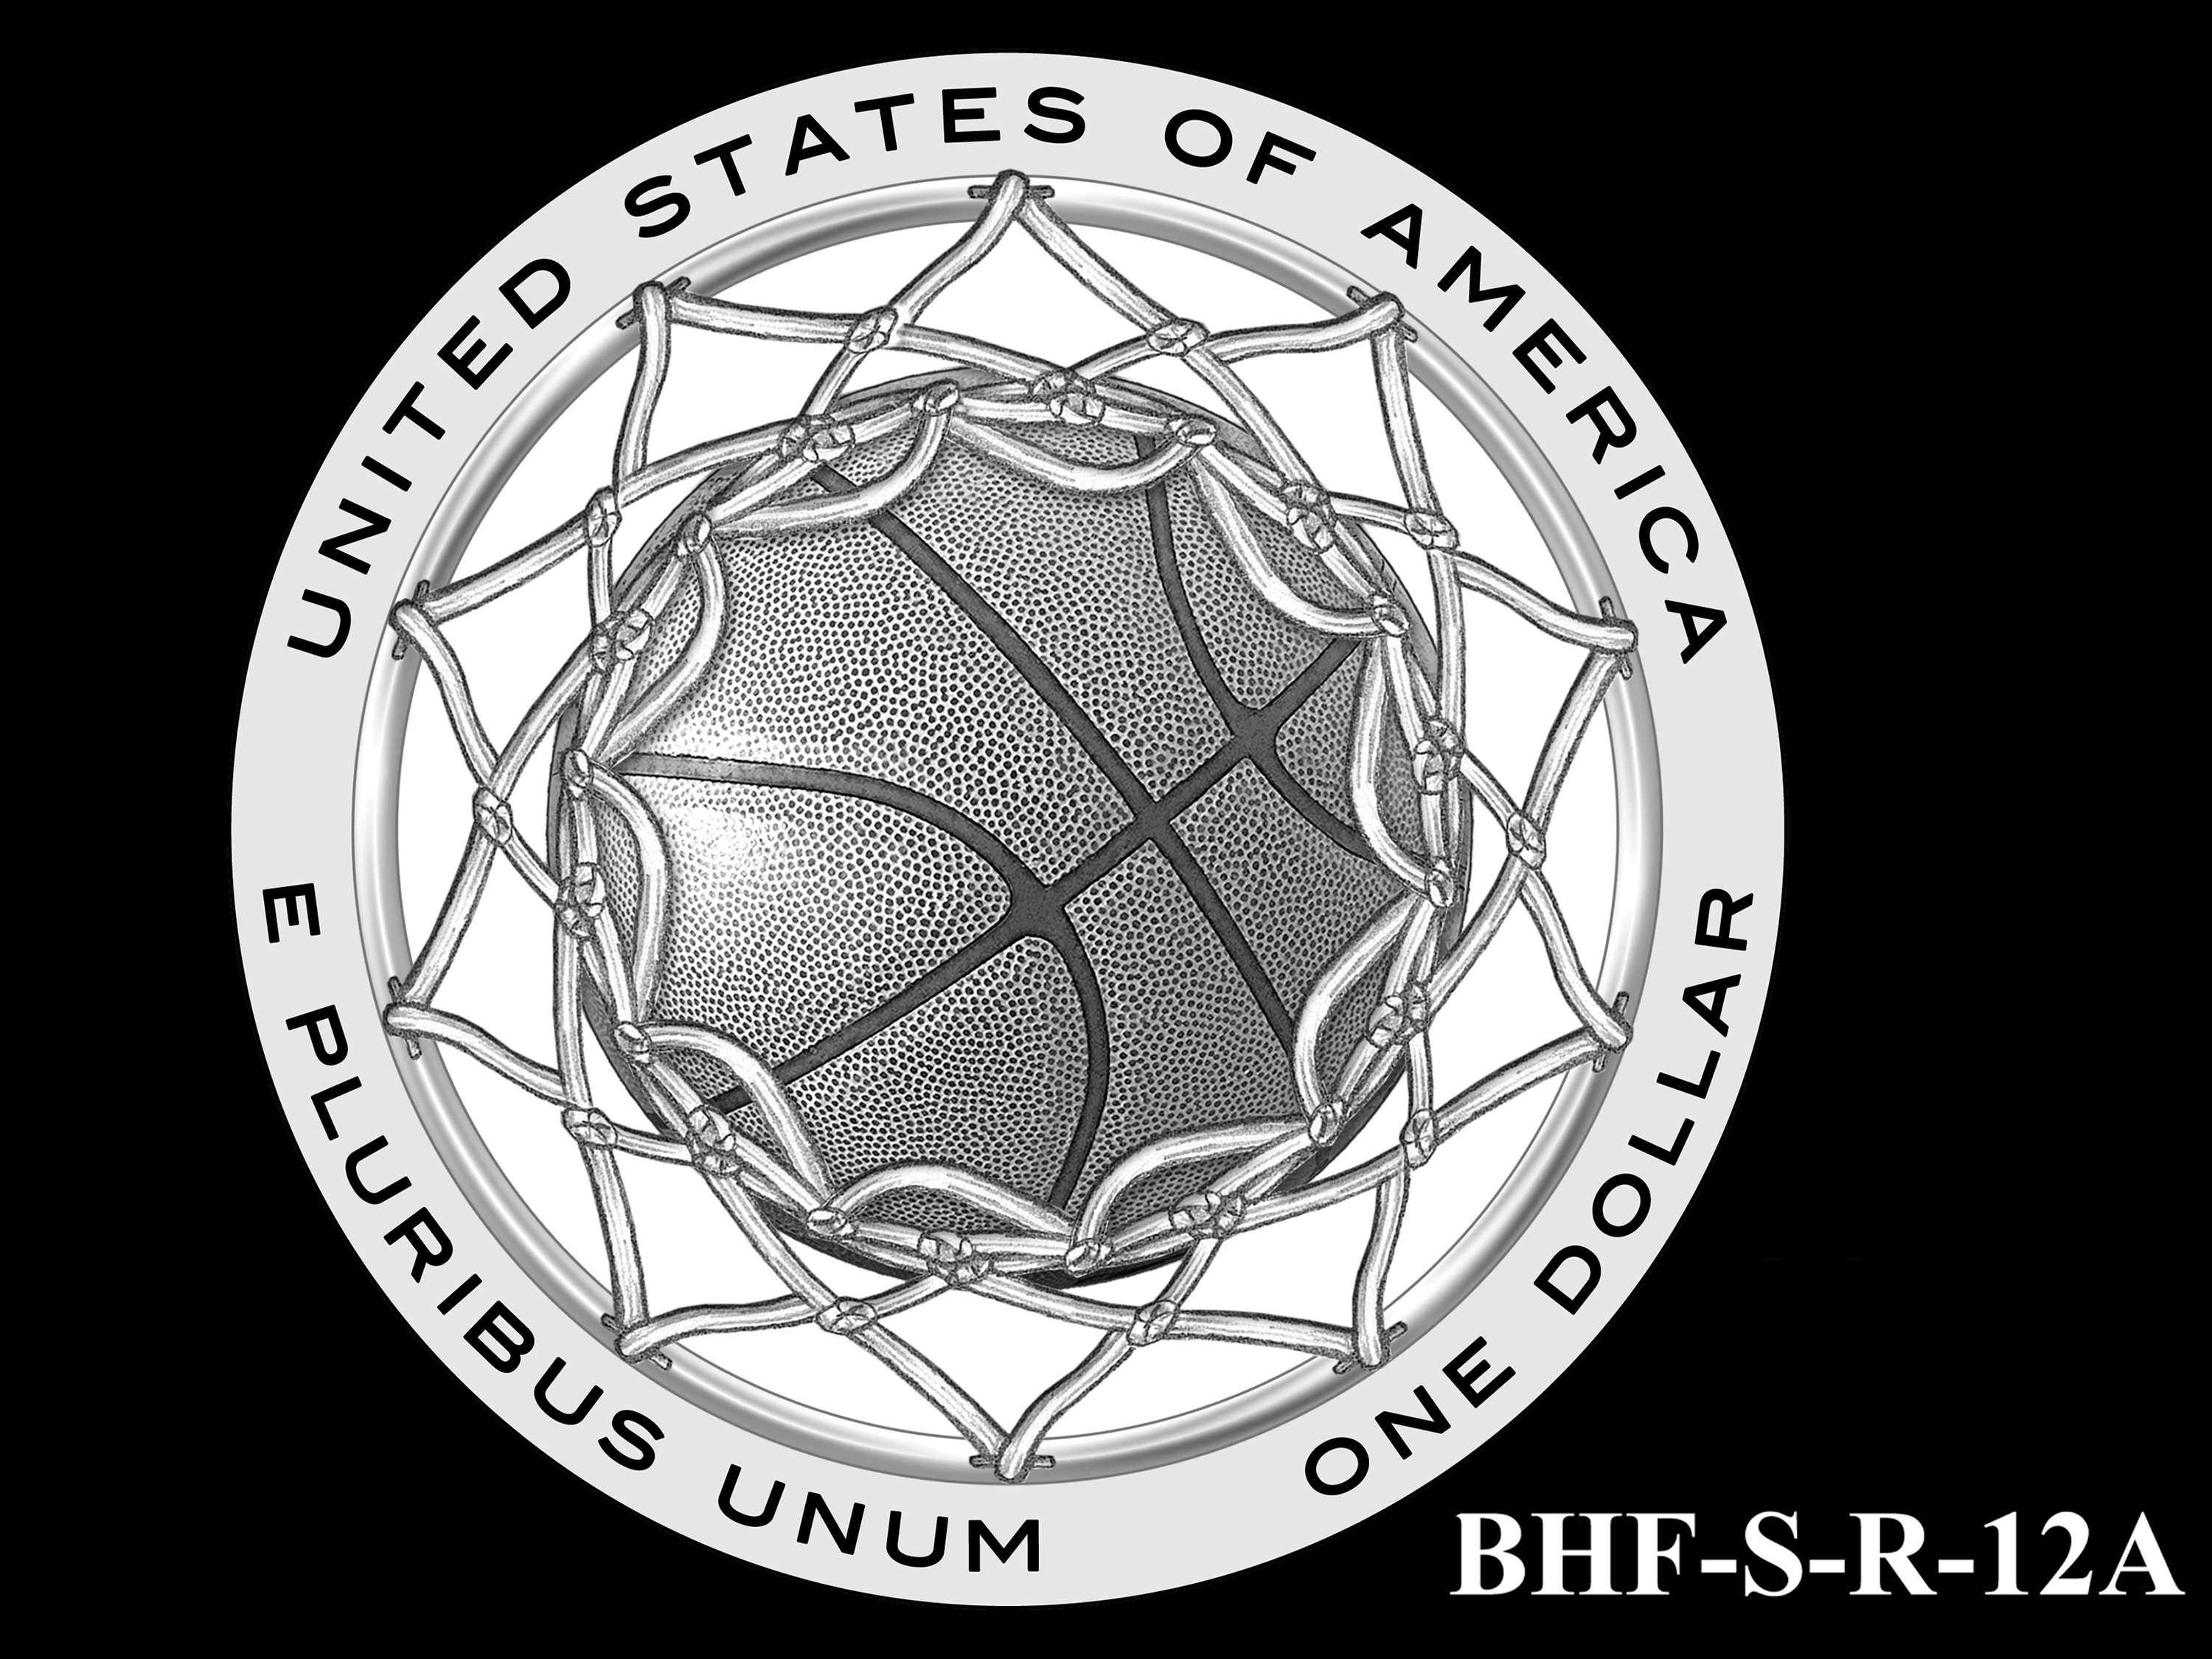 BHF-S-R-12A -- 2020 Basketball Hall of Fame Commemorative Coin Program - Silver Reverse